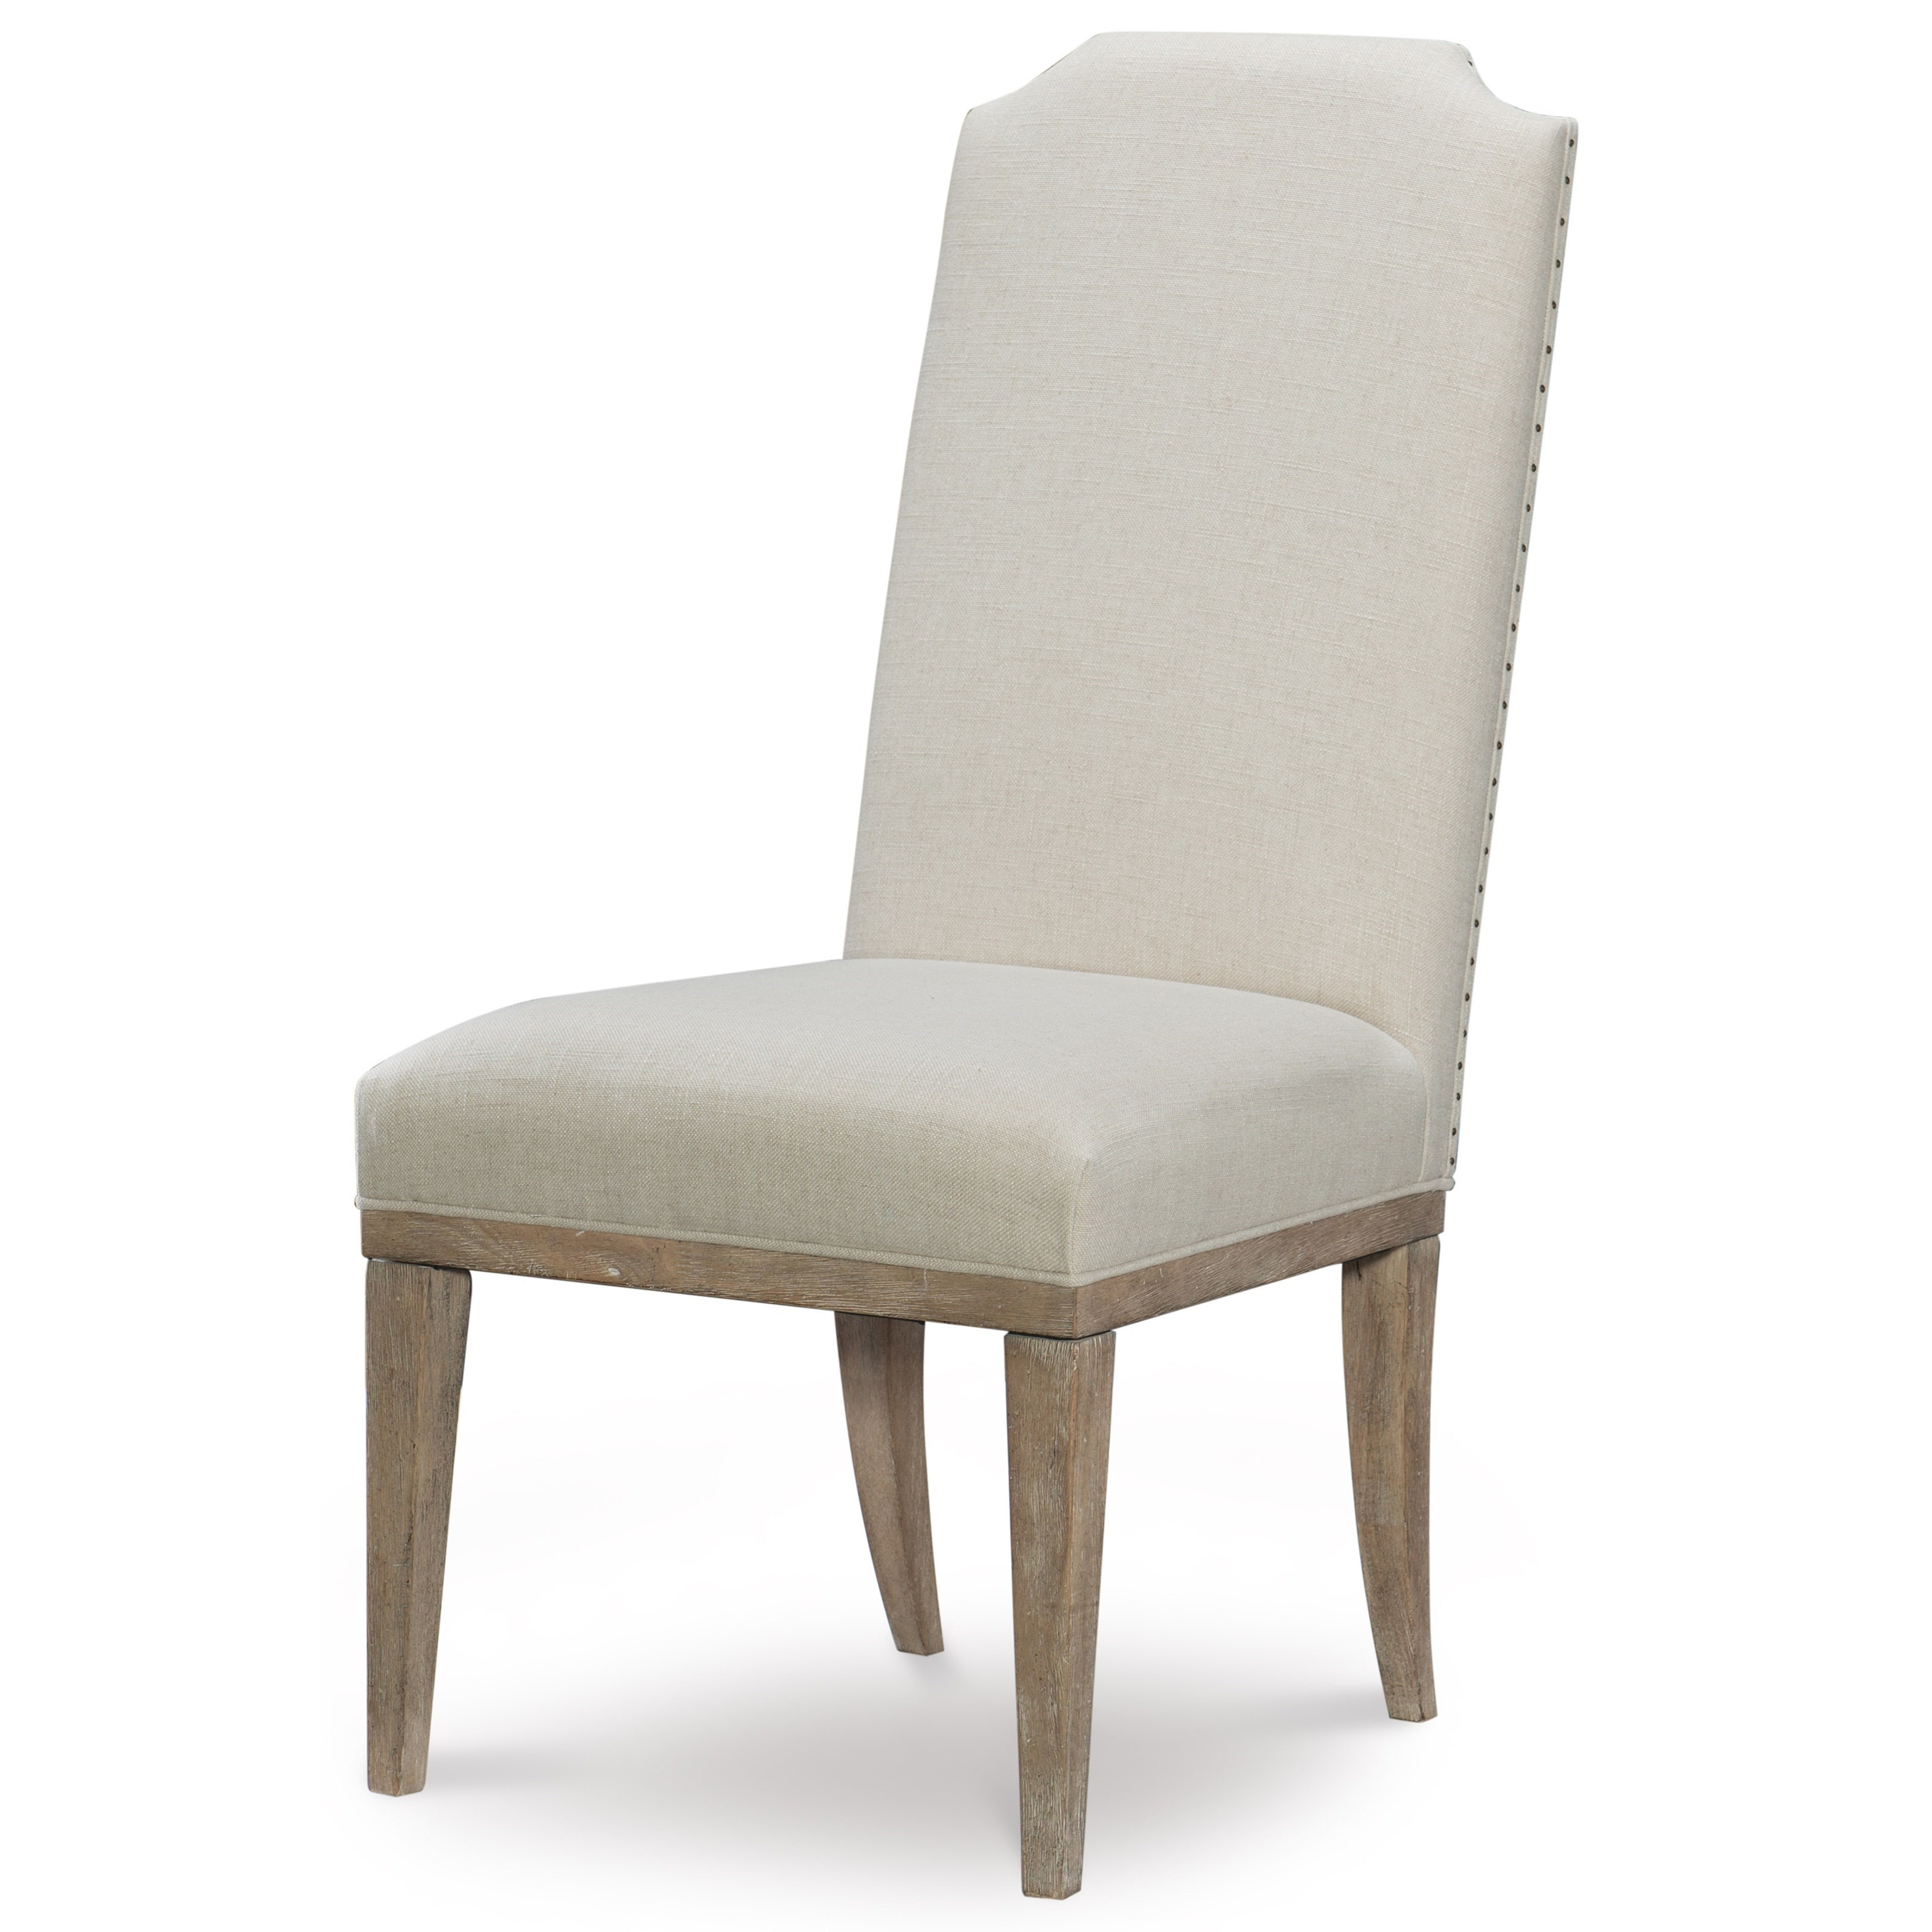 Rachael Ray Home By Legacy Classic Monteverdi 9864124 Upholstered Host Side Chair Pilgrim Furniture City Dining Side Chairs